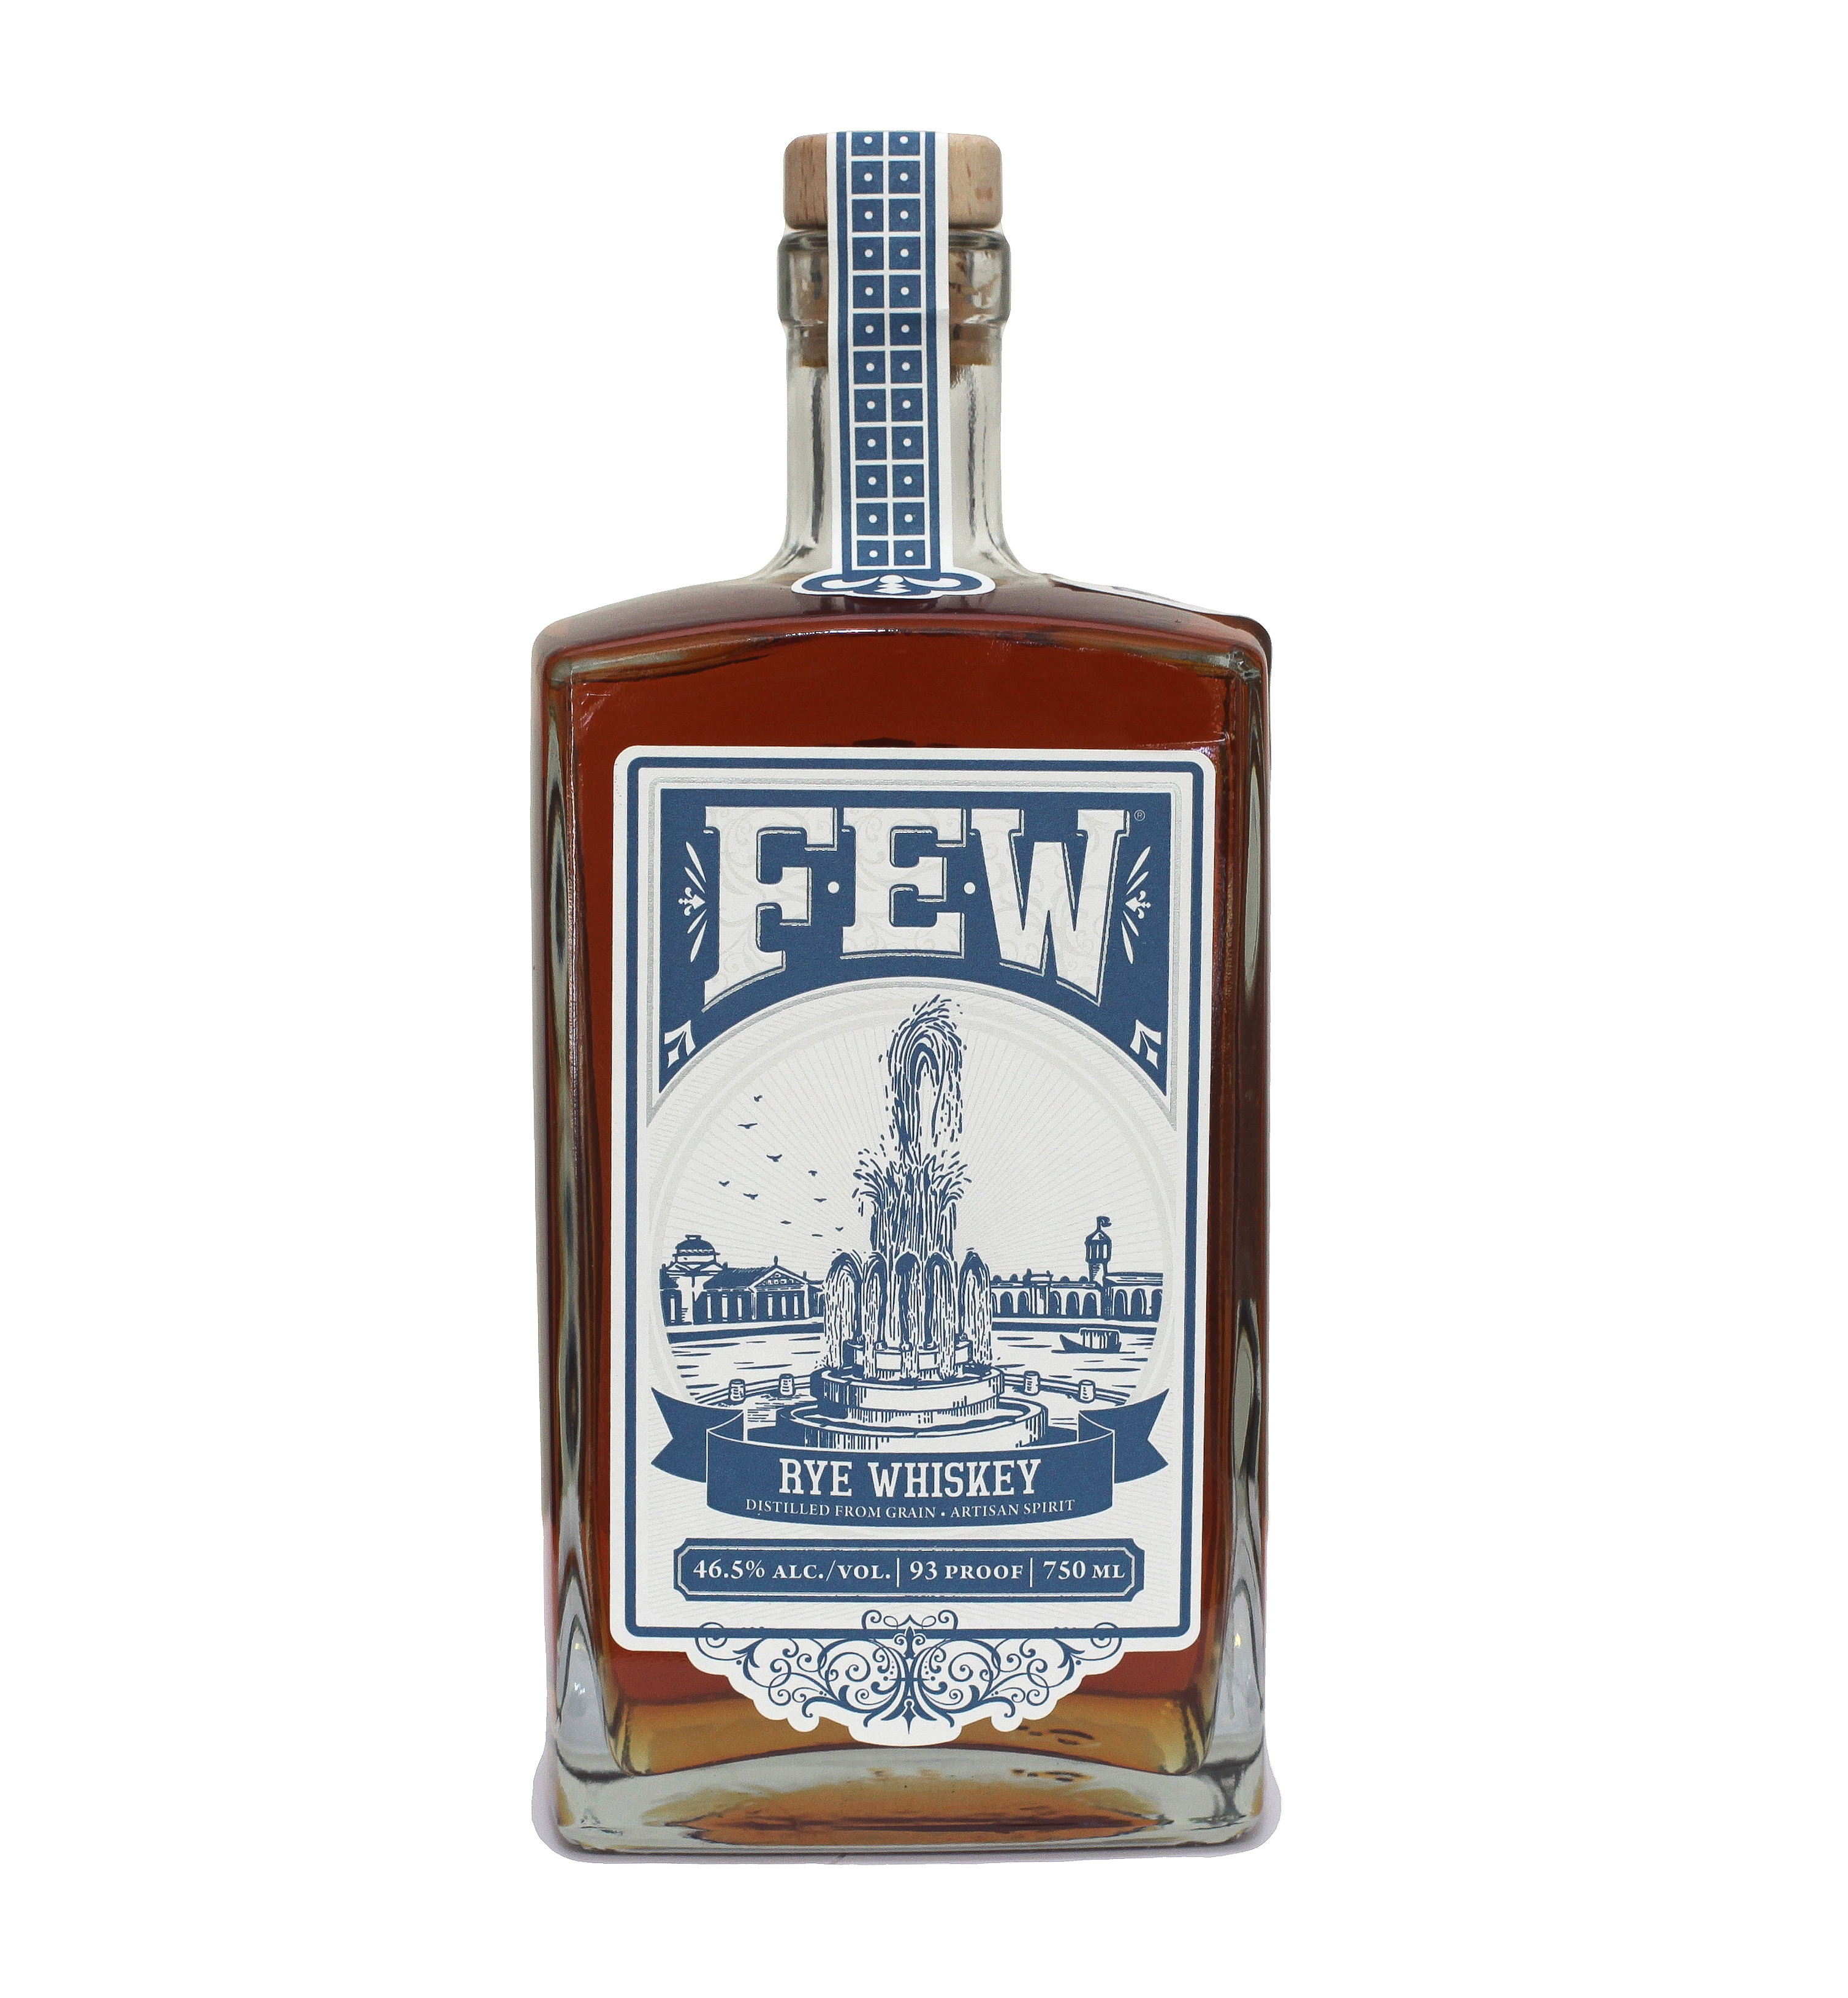 Few spirits booze business a blog dedicated to the business of few rye whiskey malvernweather Gallery